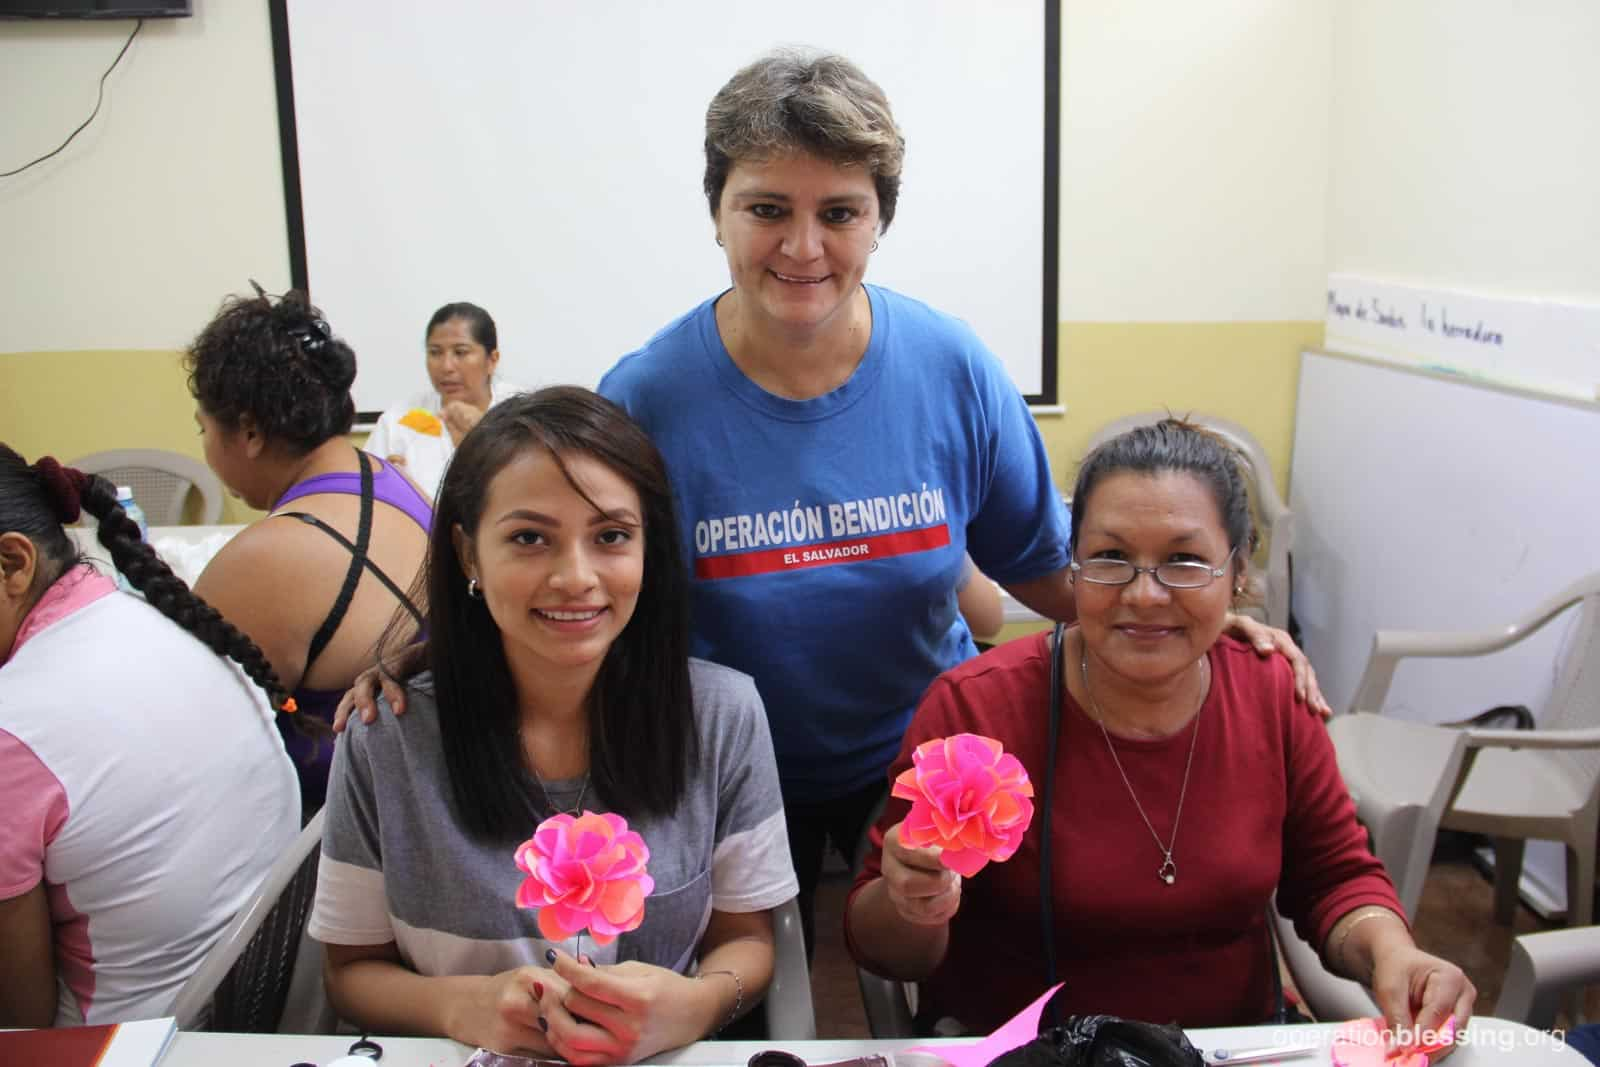 Maria and her mother sit side by side holding their paper flowers as an Operation Blessing worker shows her support.